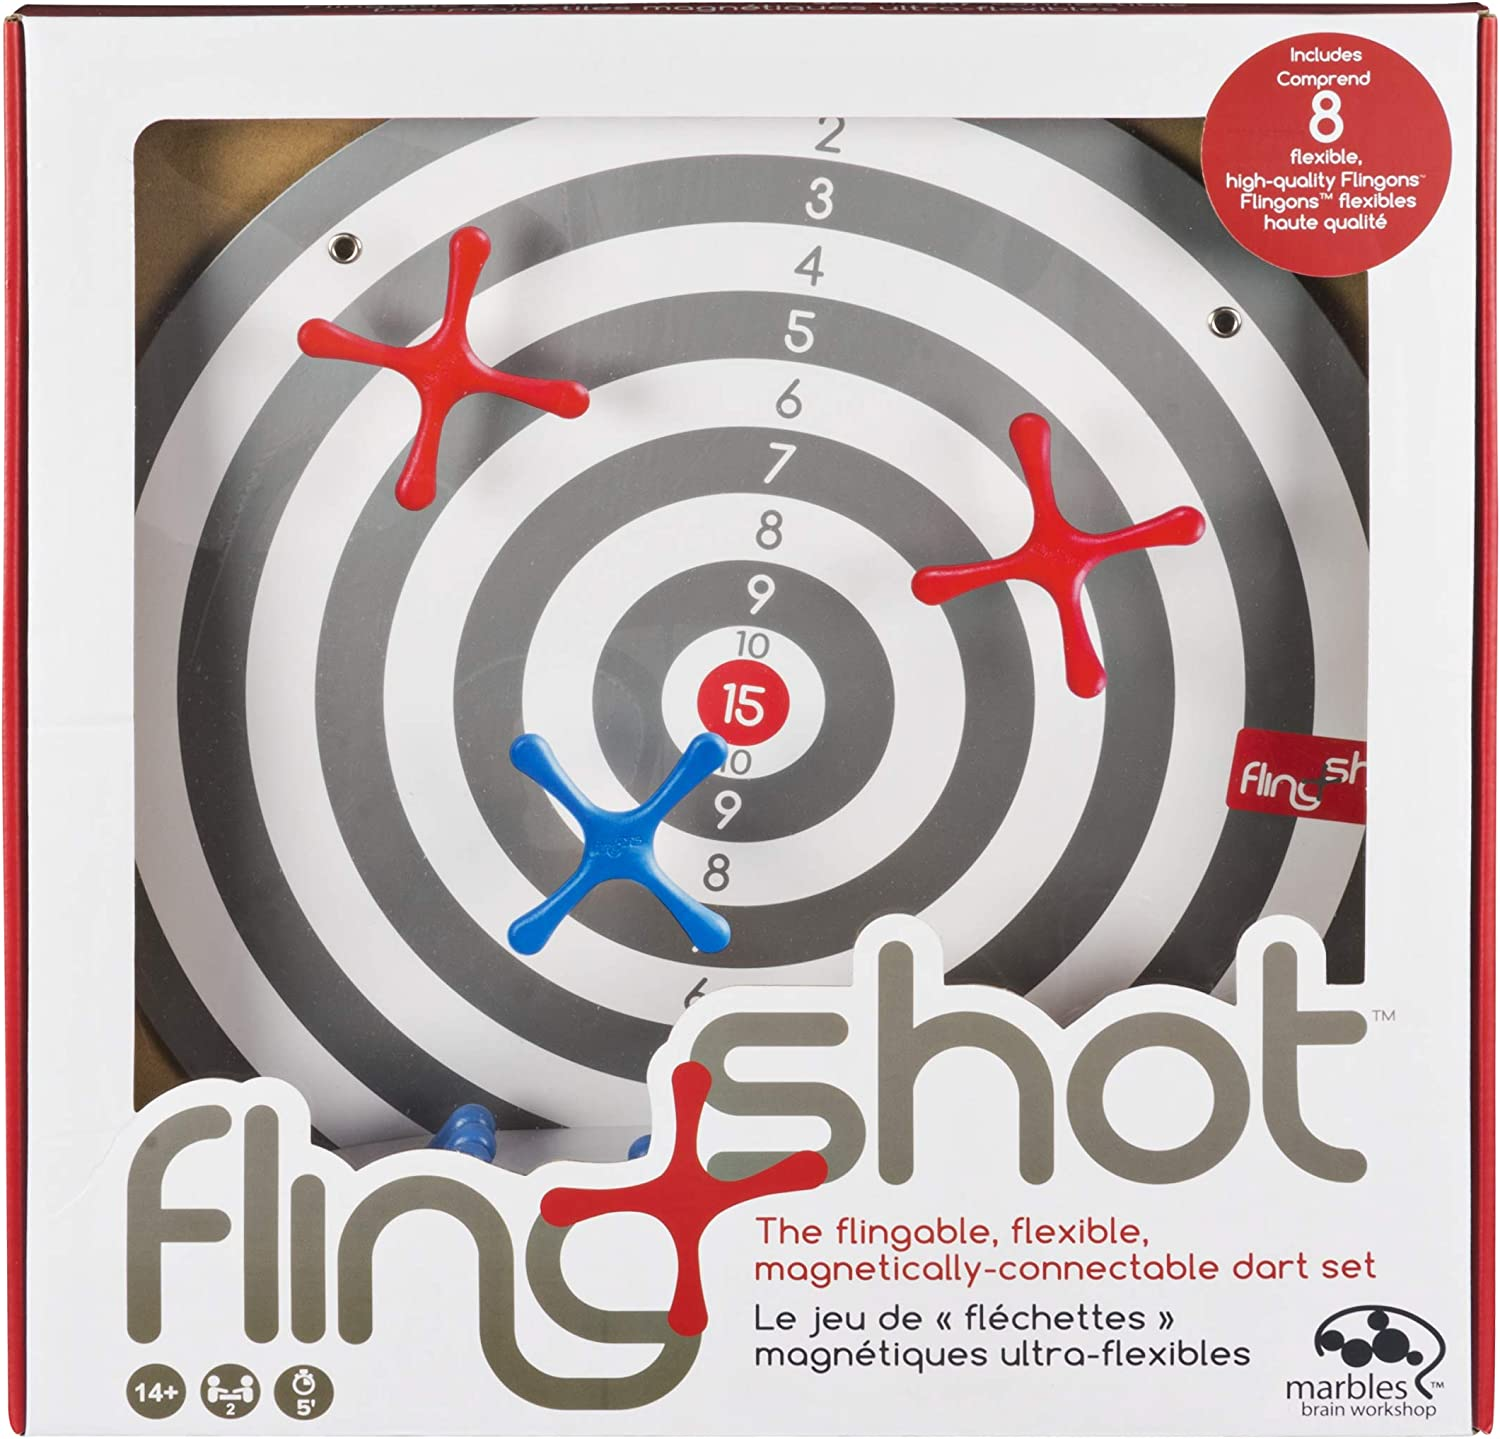 FlingShot Free shipping anywhere in 2021 model the nation – Interactive Dart Game Pieces Magnetized with